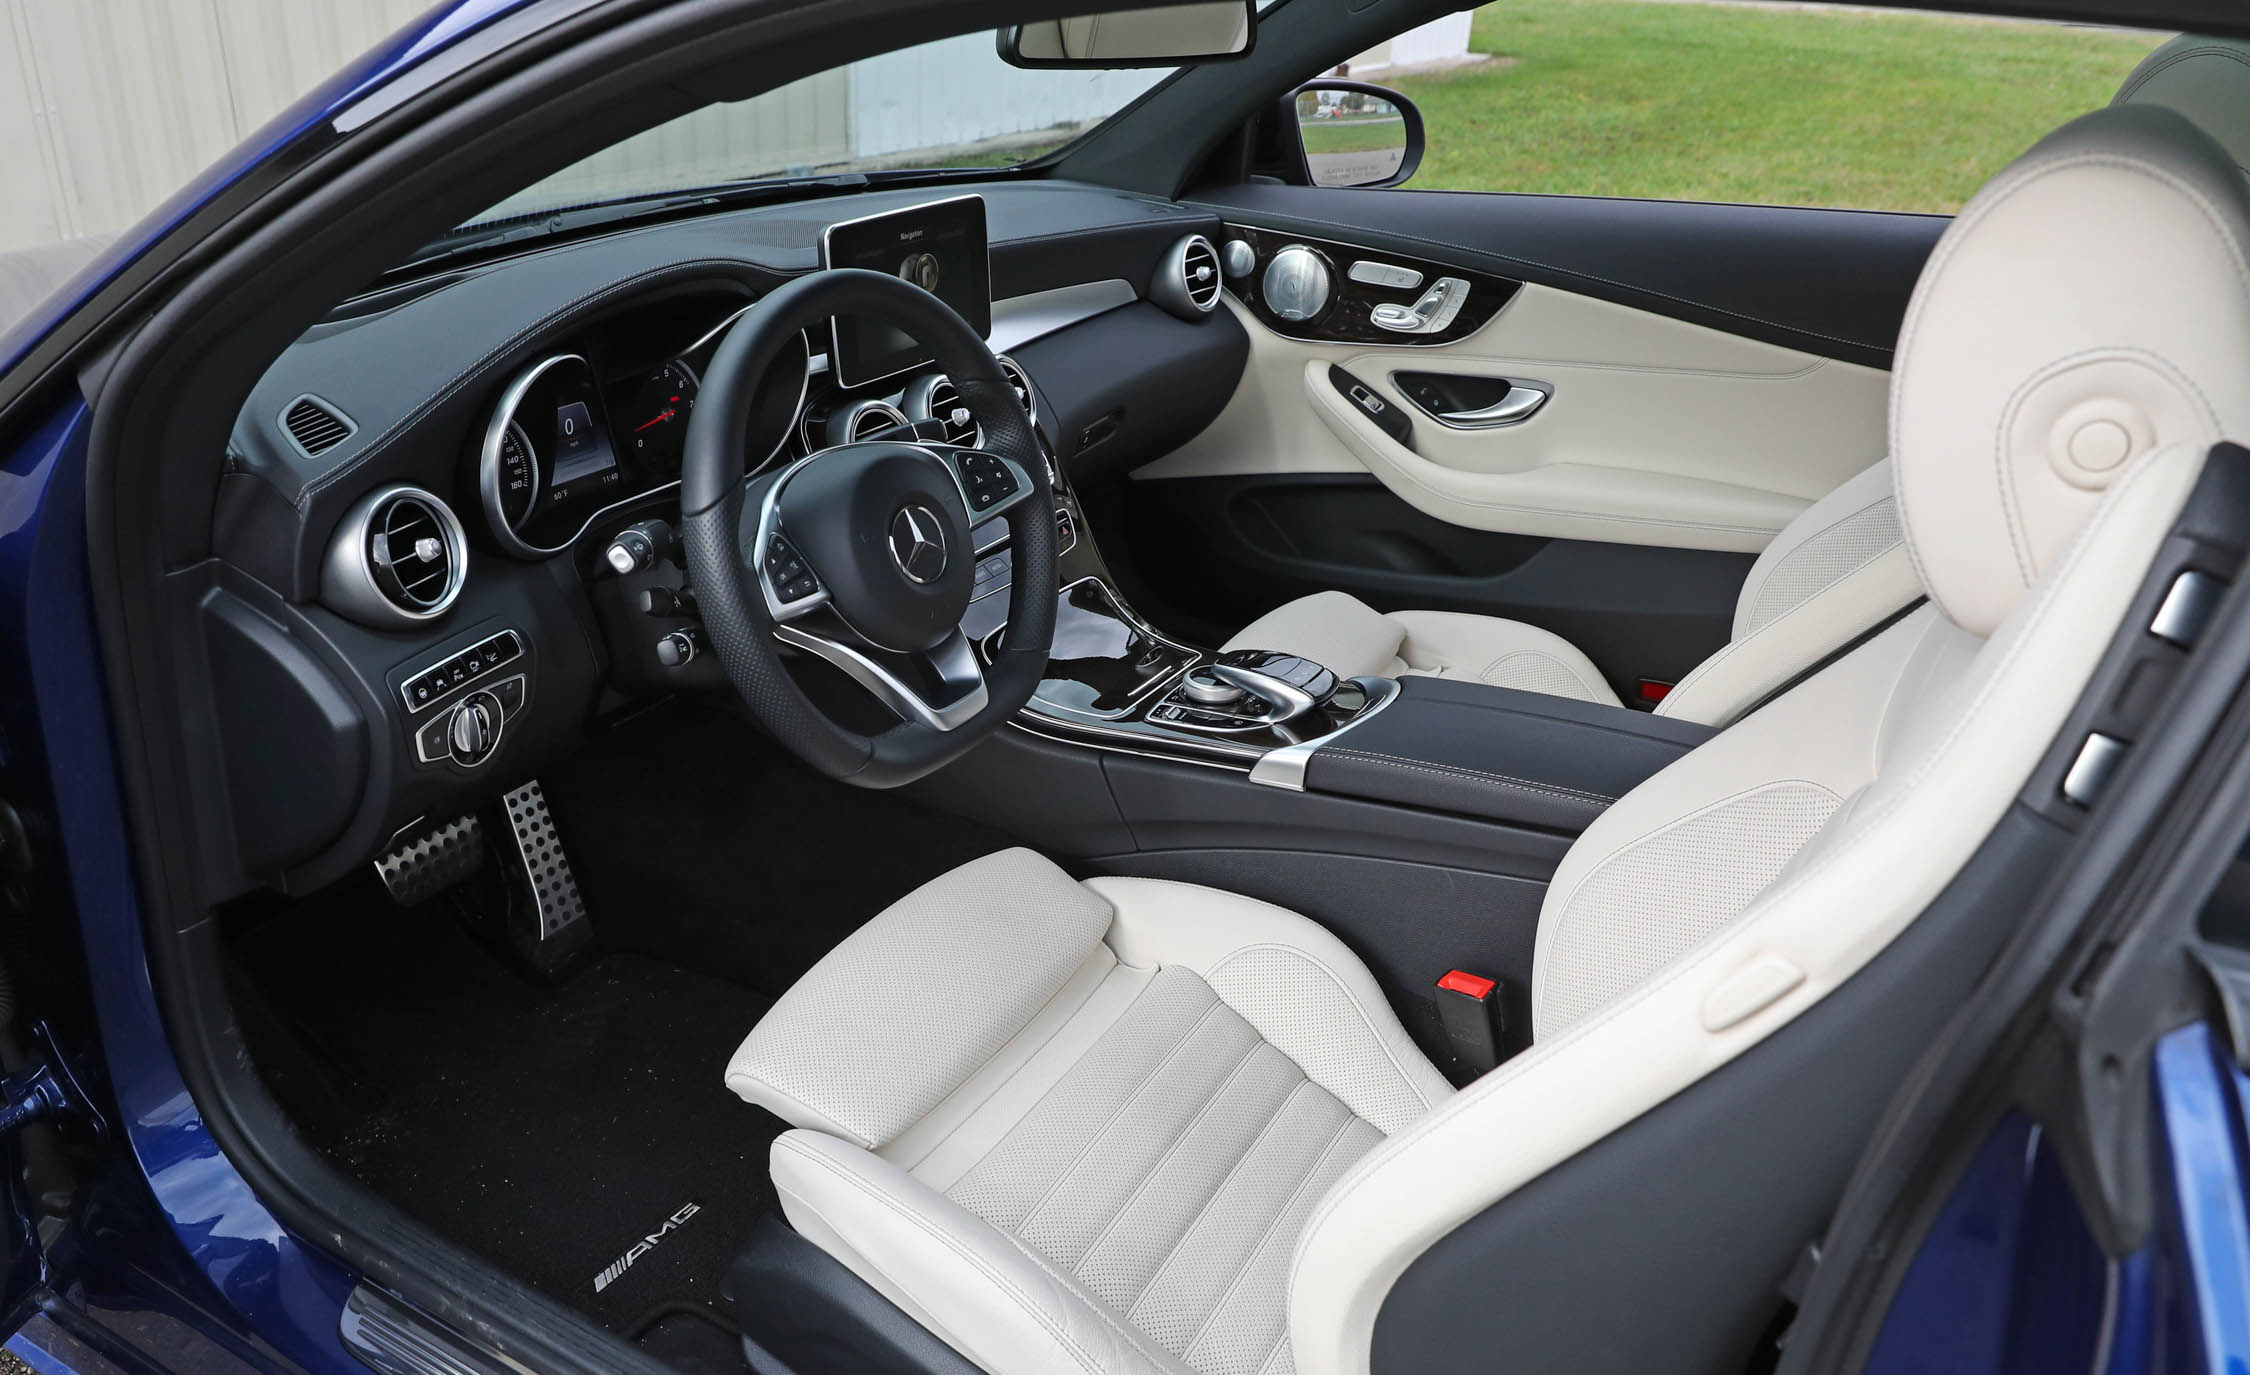 2017 Mercedes Benz C300 4MATIC Coupe Interior Front (View 23 of 44)